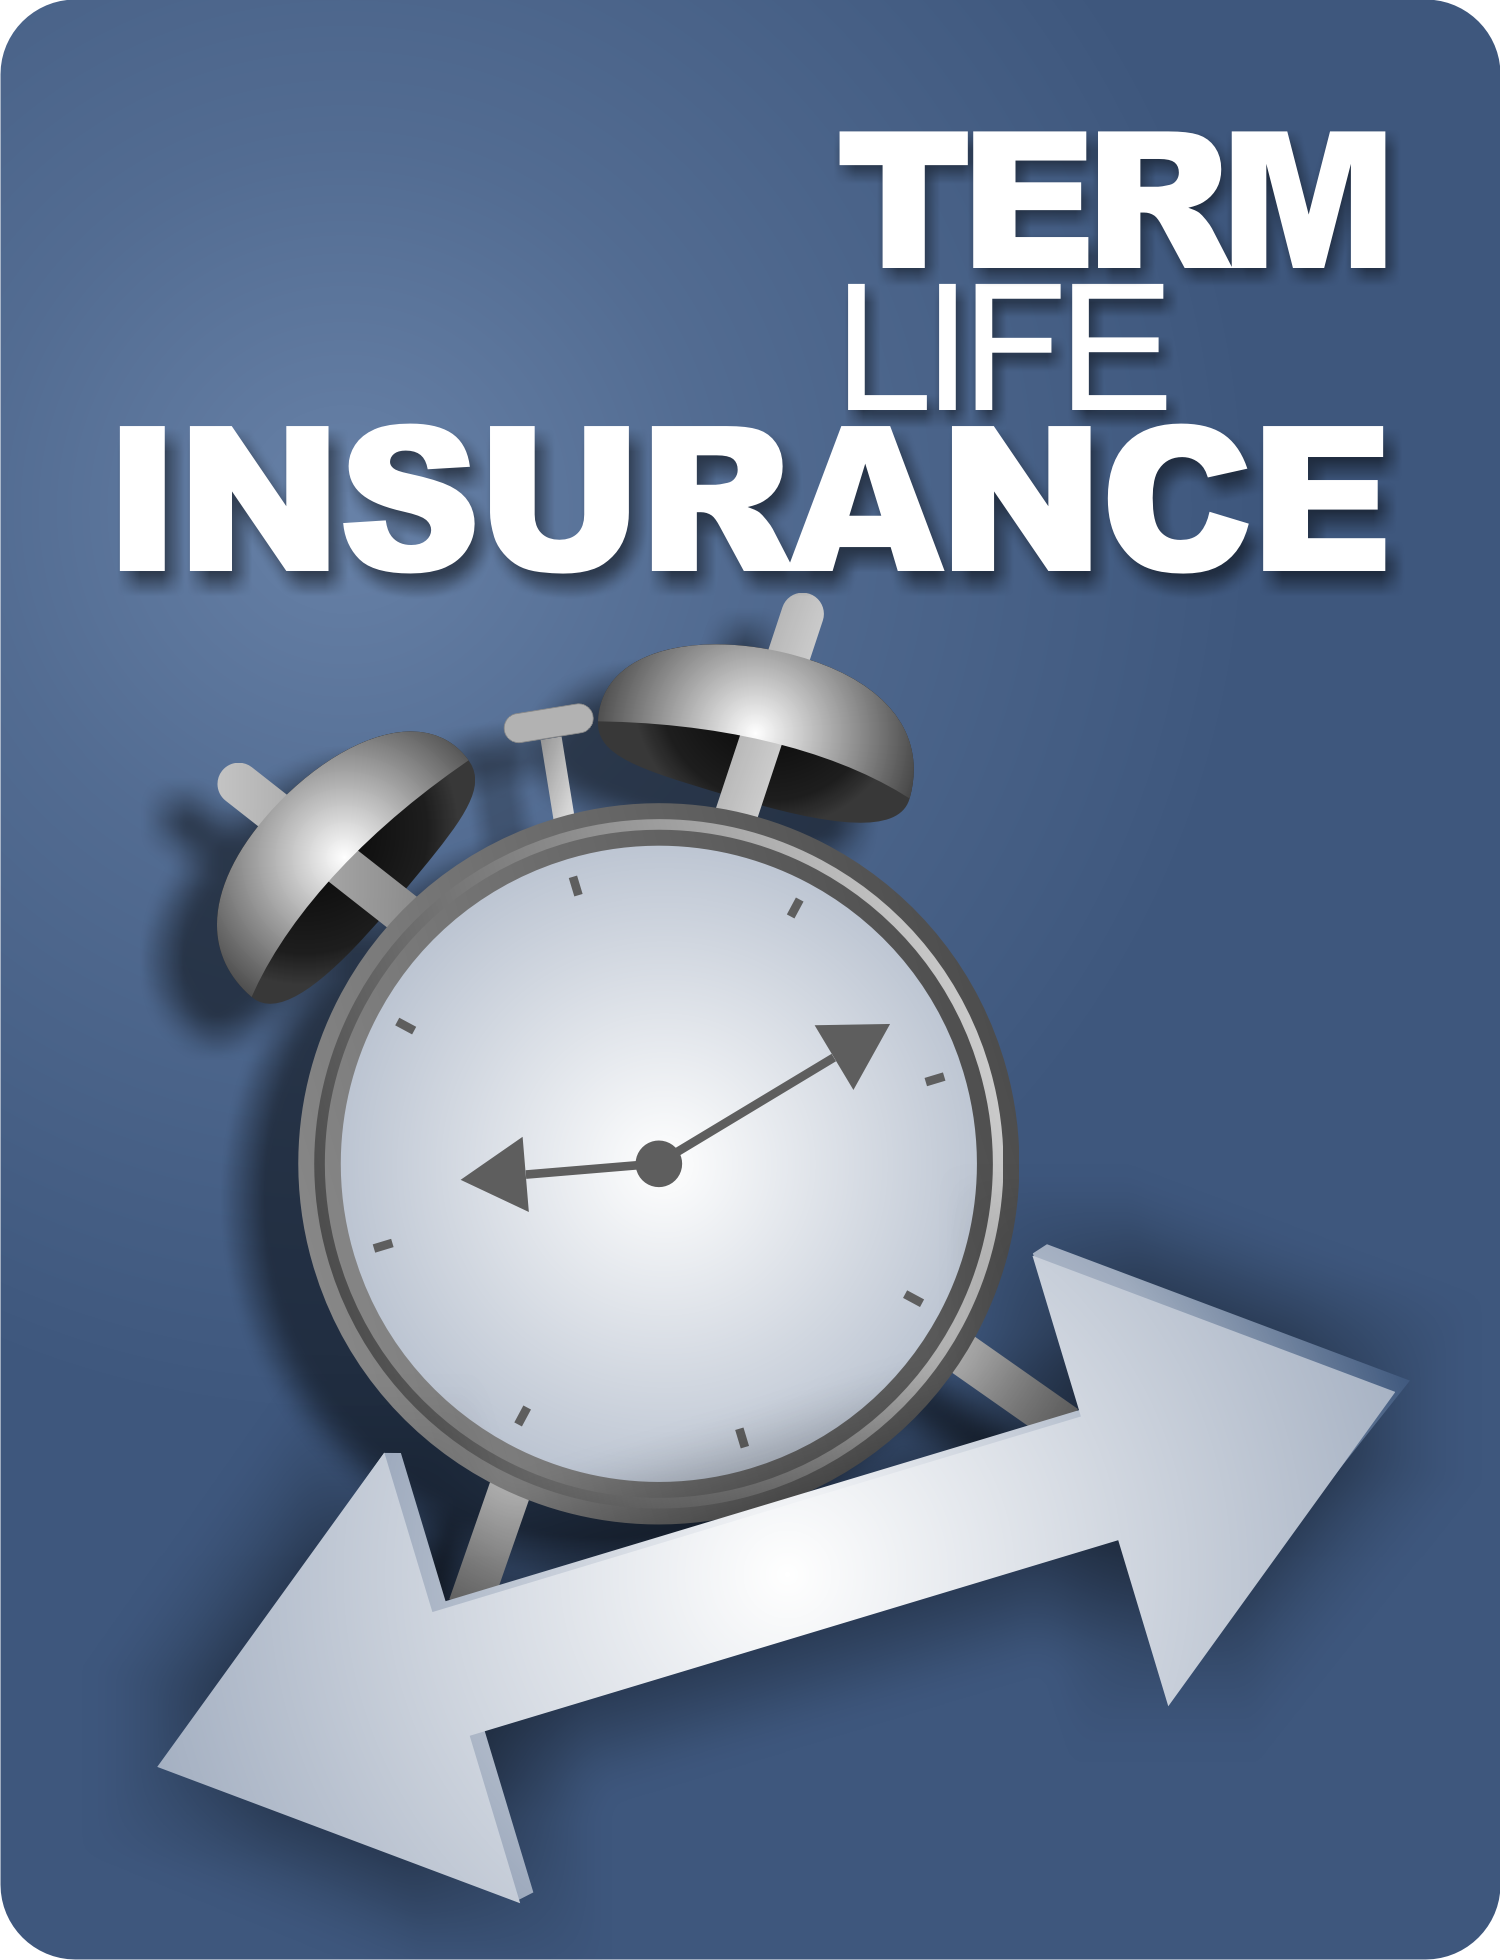 Life Insurance Quotes Whole Life Don't Wait Until It's Too Late Protect Your Family With A Term